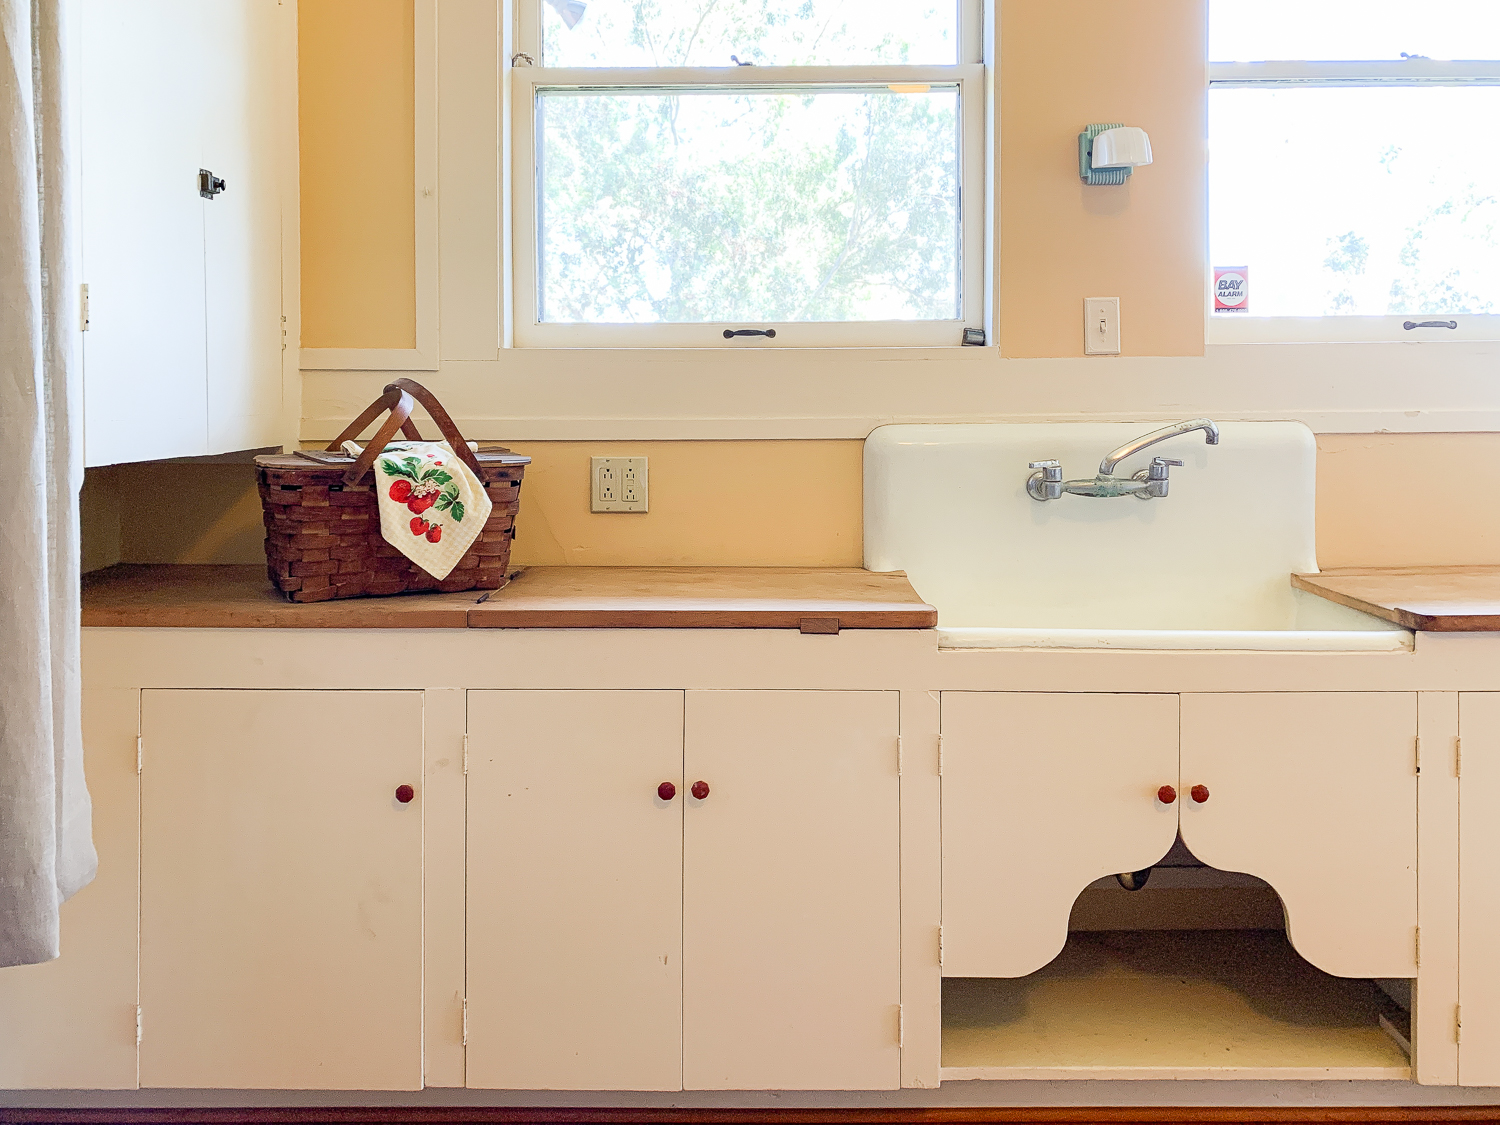 The Marston House vintage kitchen inspiration The Gold Hive-9104 decorative cut out under sink.jpg